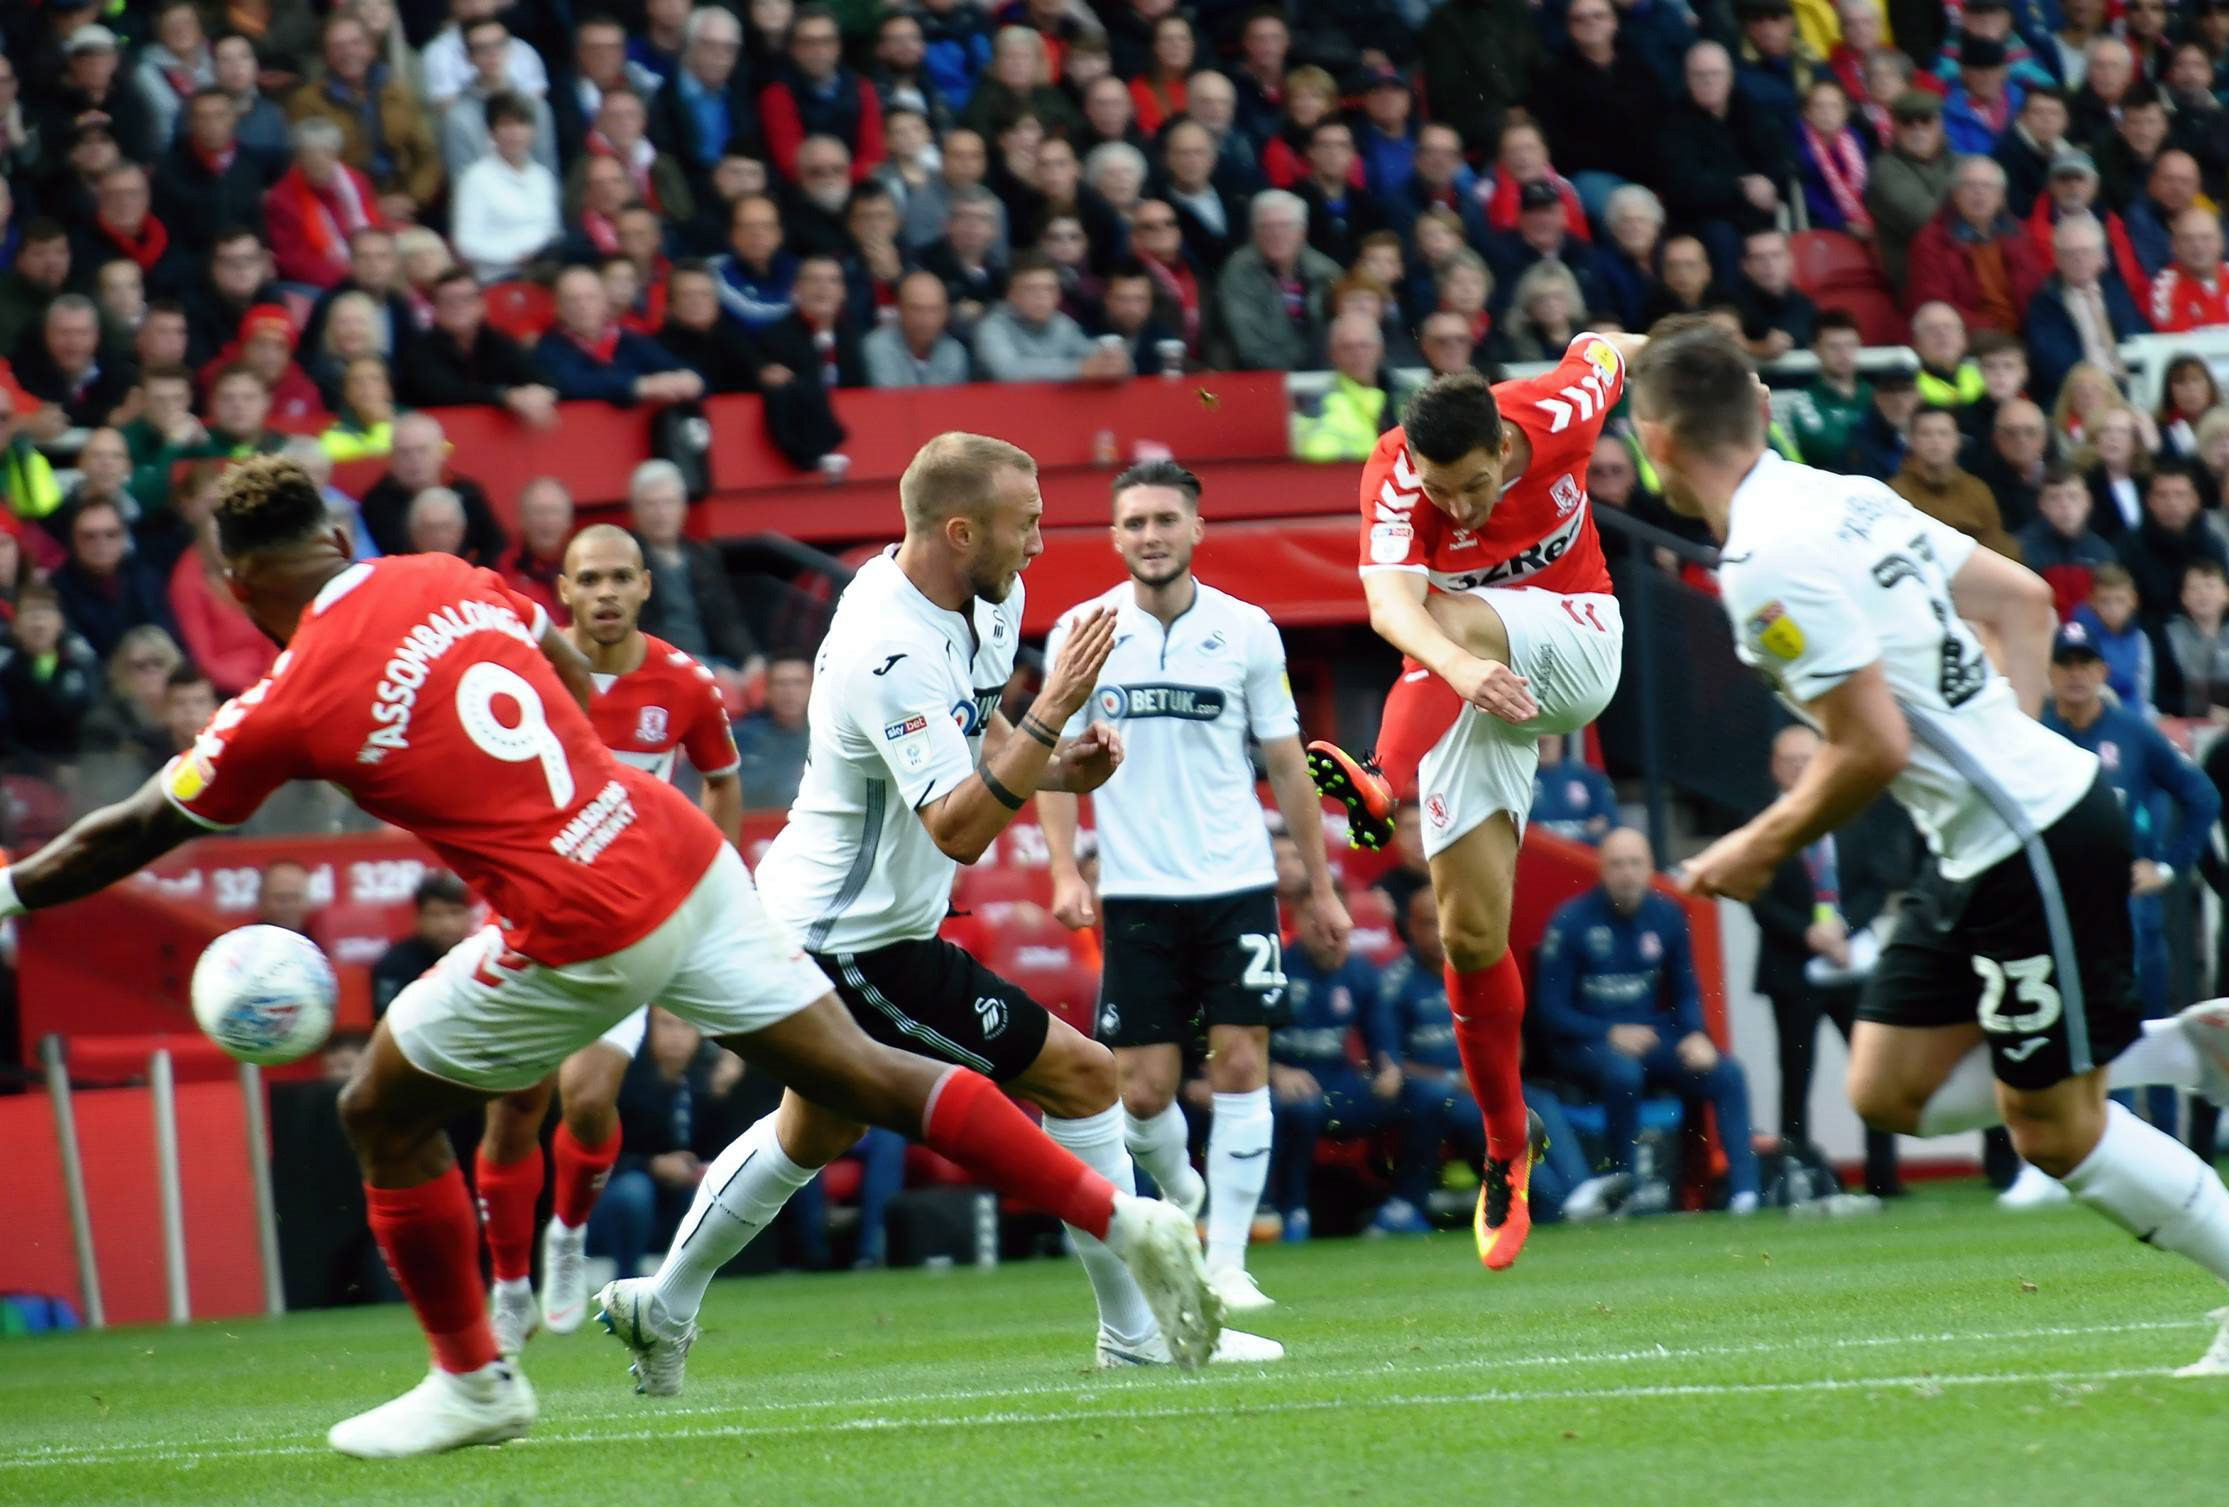 CLOSE: Stewart Downing had this shot saved early on against Swansea